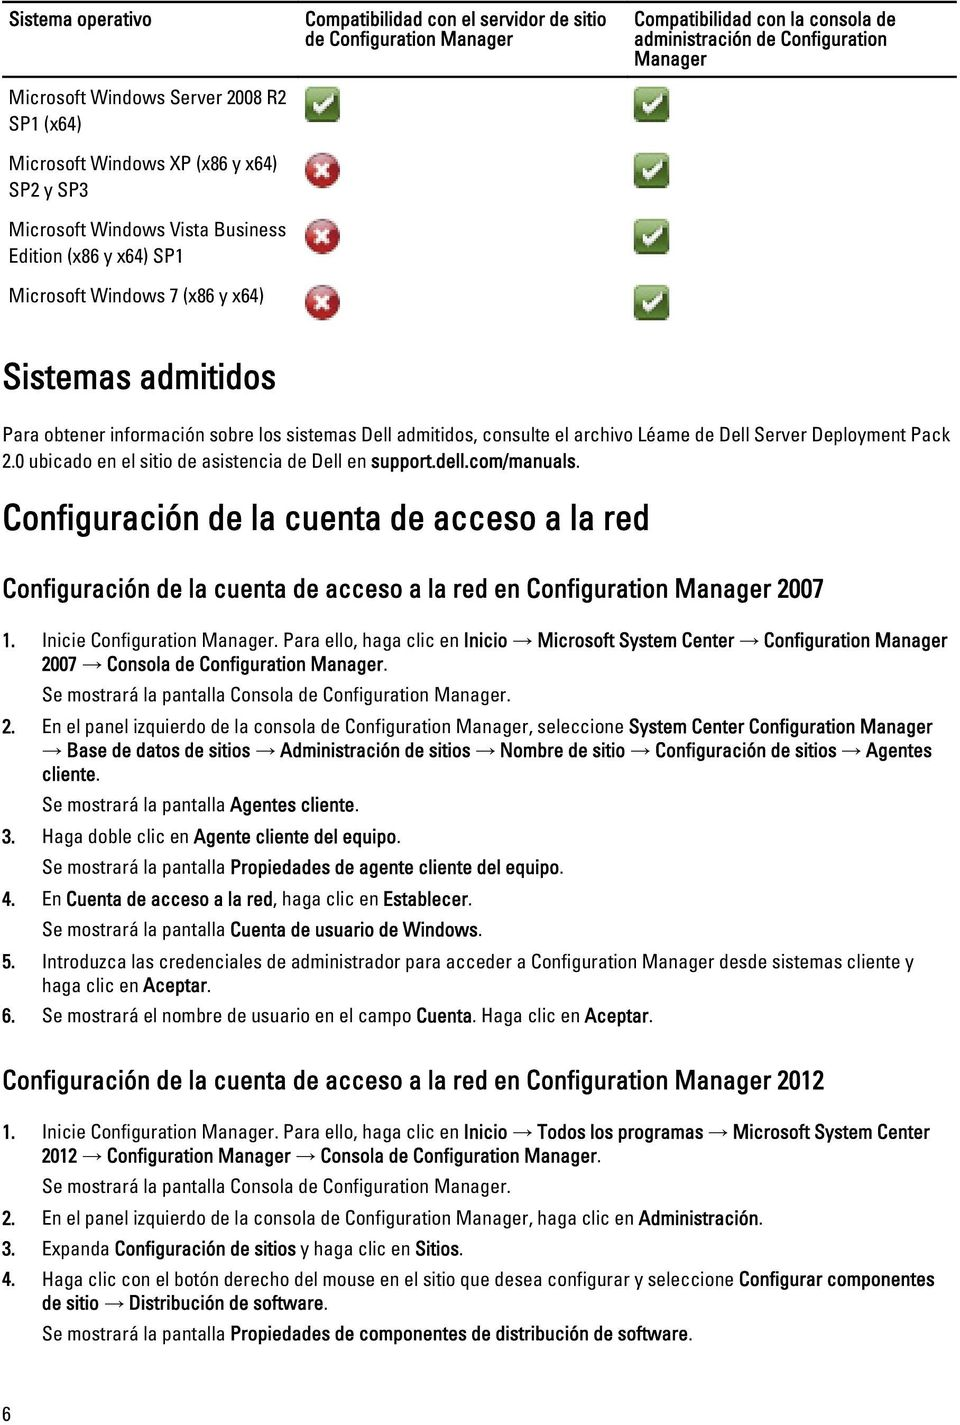 sistemas Dell admitidos, consulte el archivo Léame de Dell Server Deployment Pack 2.0 ubicado en el sitio de asistencia de Dell en support.dell.com/manuals.